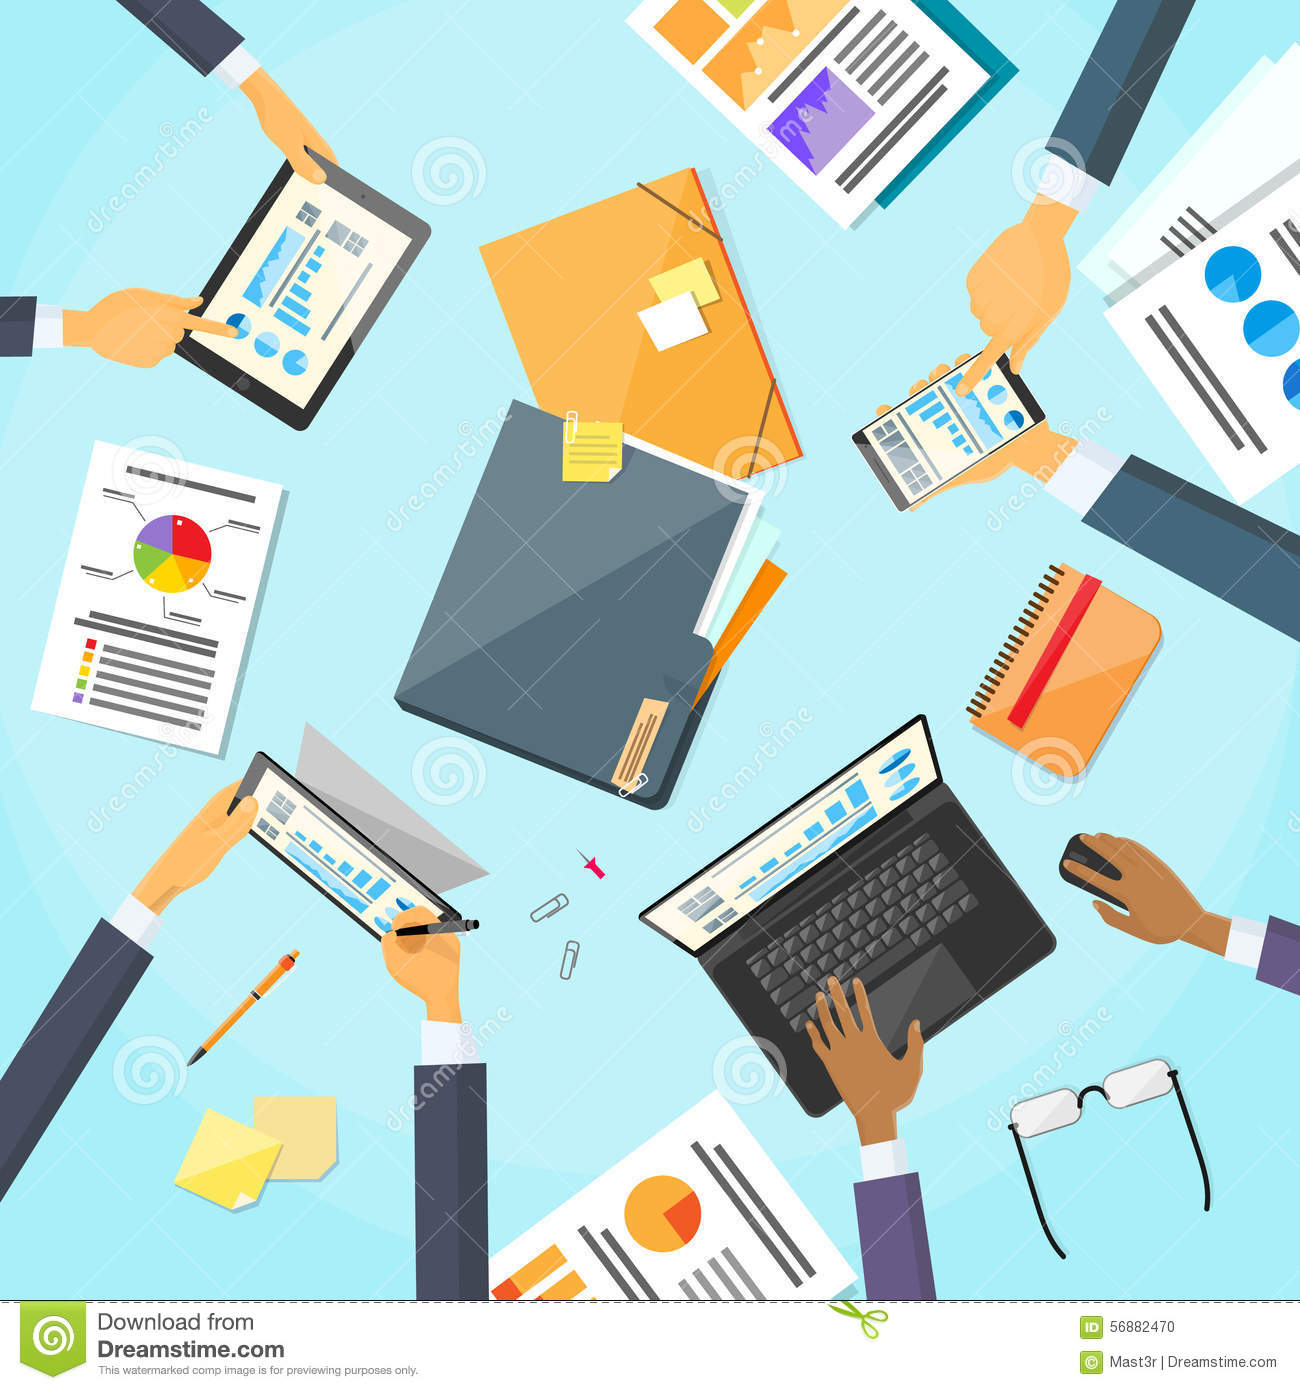 business people hands desk workplace team working stock vector business people hands desk workplace team working